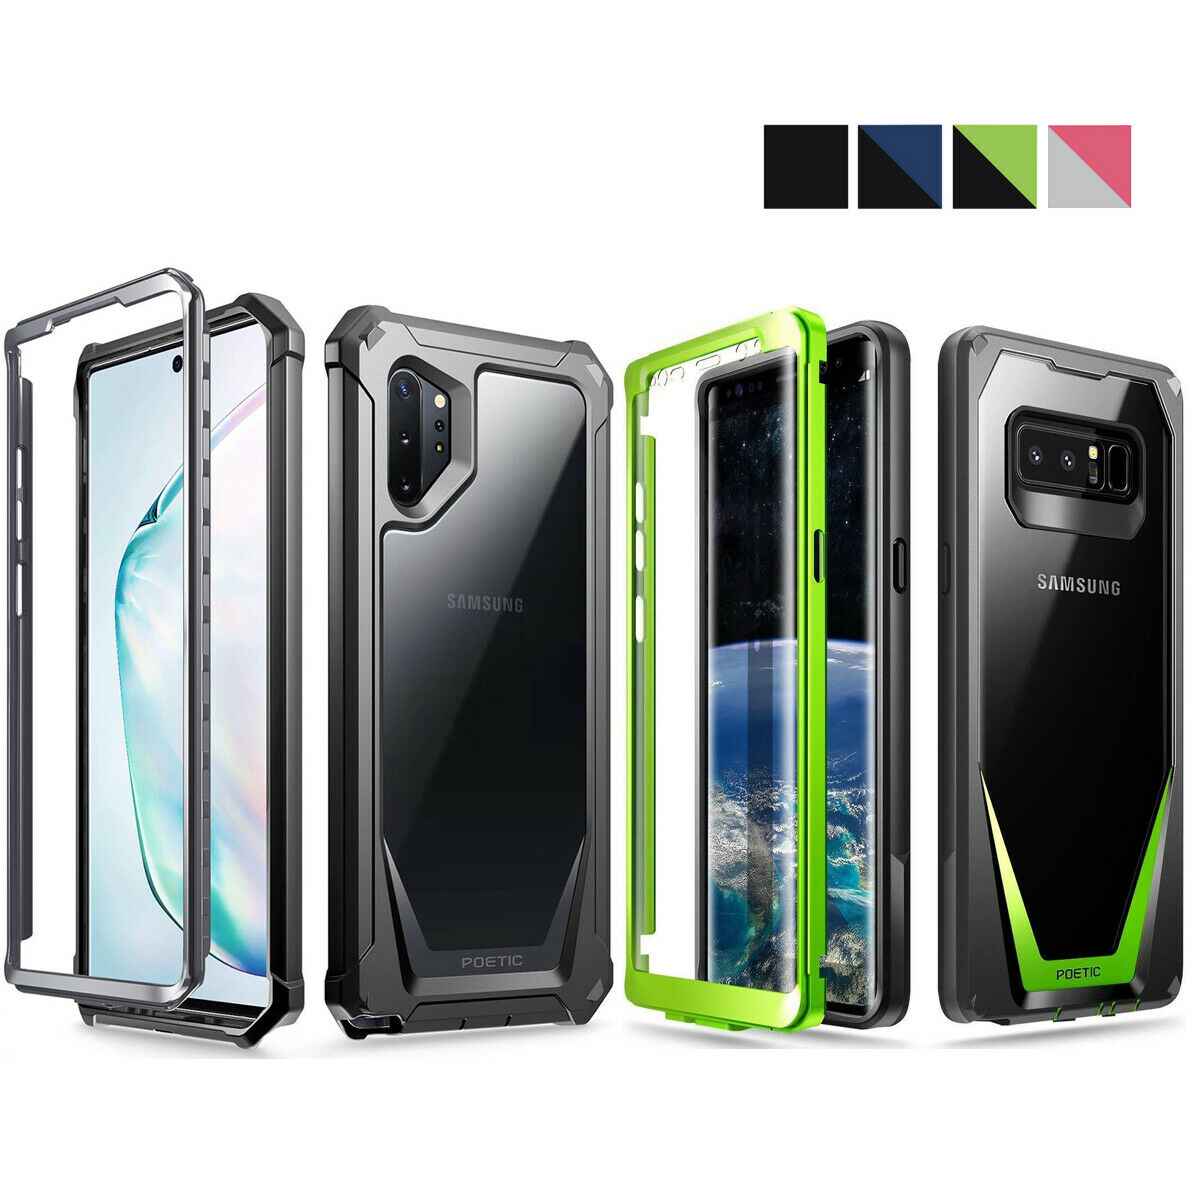 Case For Samsung Galaxy Note 8 9 Poeticguardian360 Degree Xiaomi Redmi 5 Pro Hardcase 360 Full Protective Protection 1 Of 7free Shipping